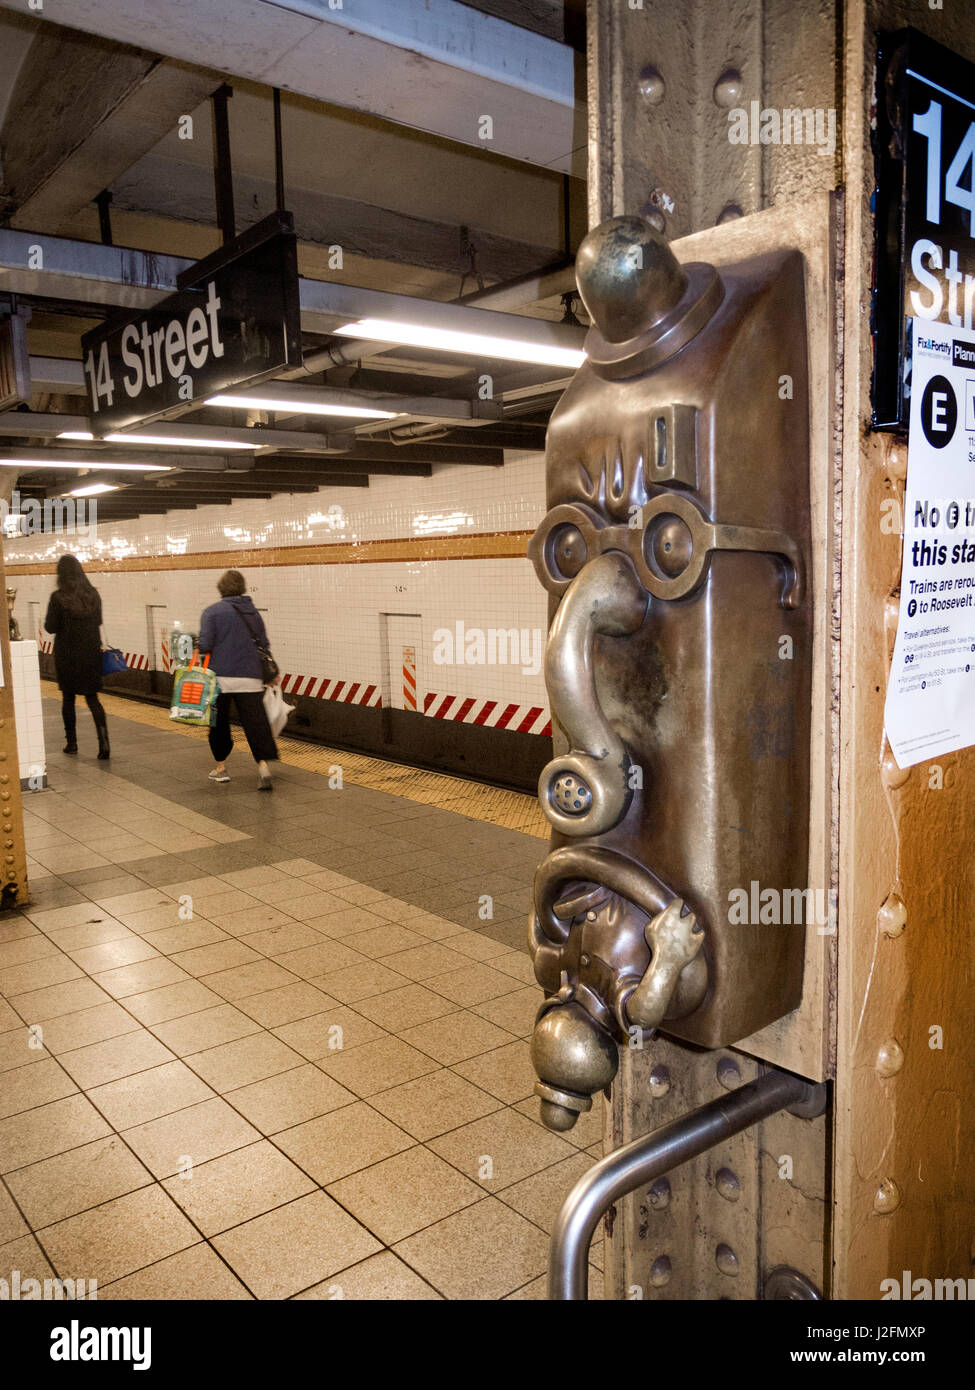 A funny face caricature on the 14th Street subway platform in Manhattan, New York City, is part of a decorative - Stock Image